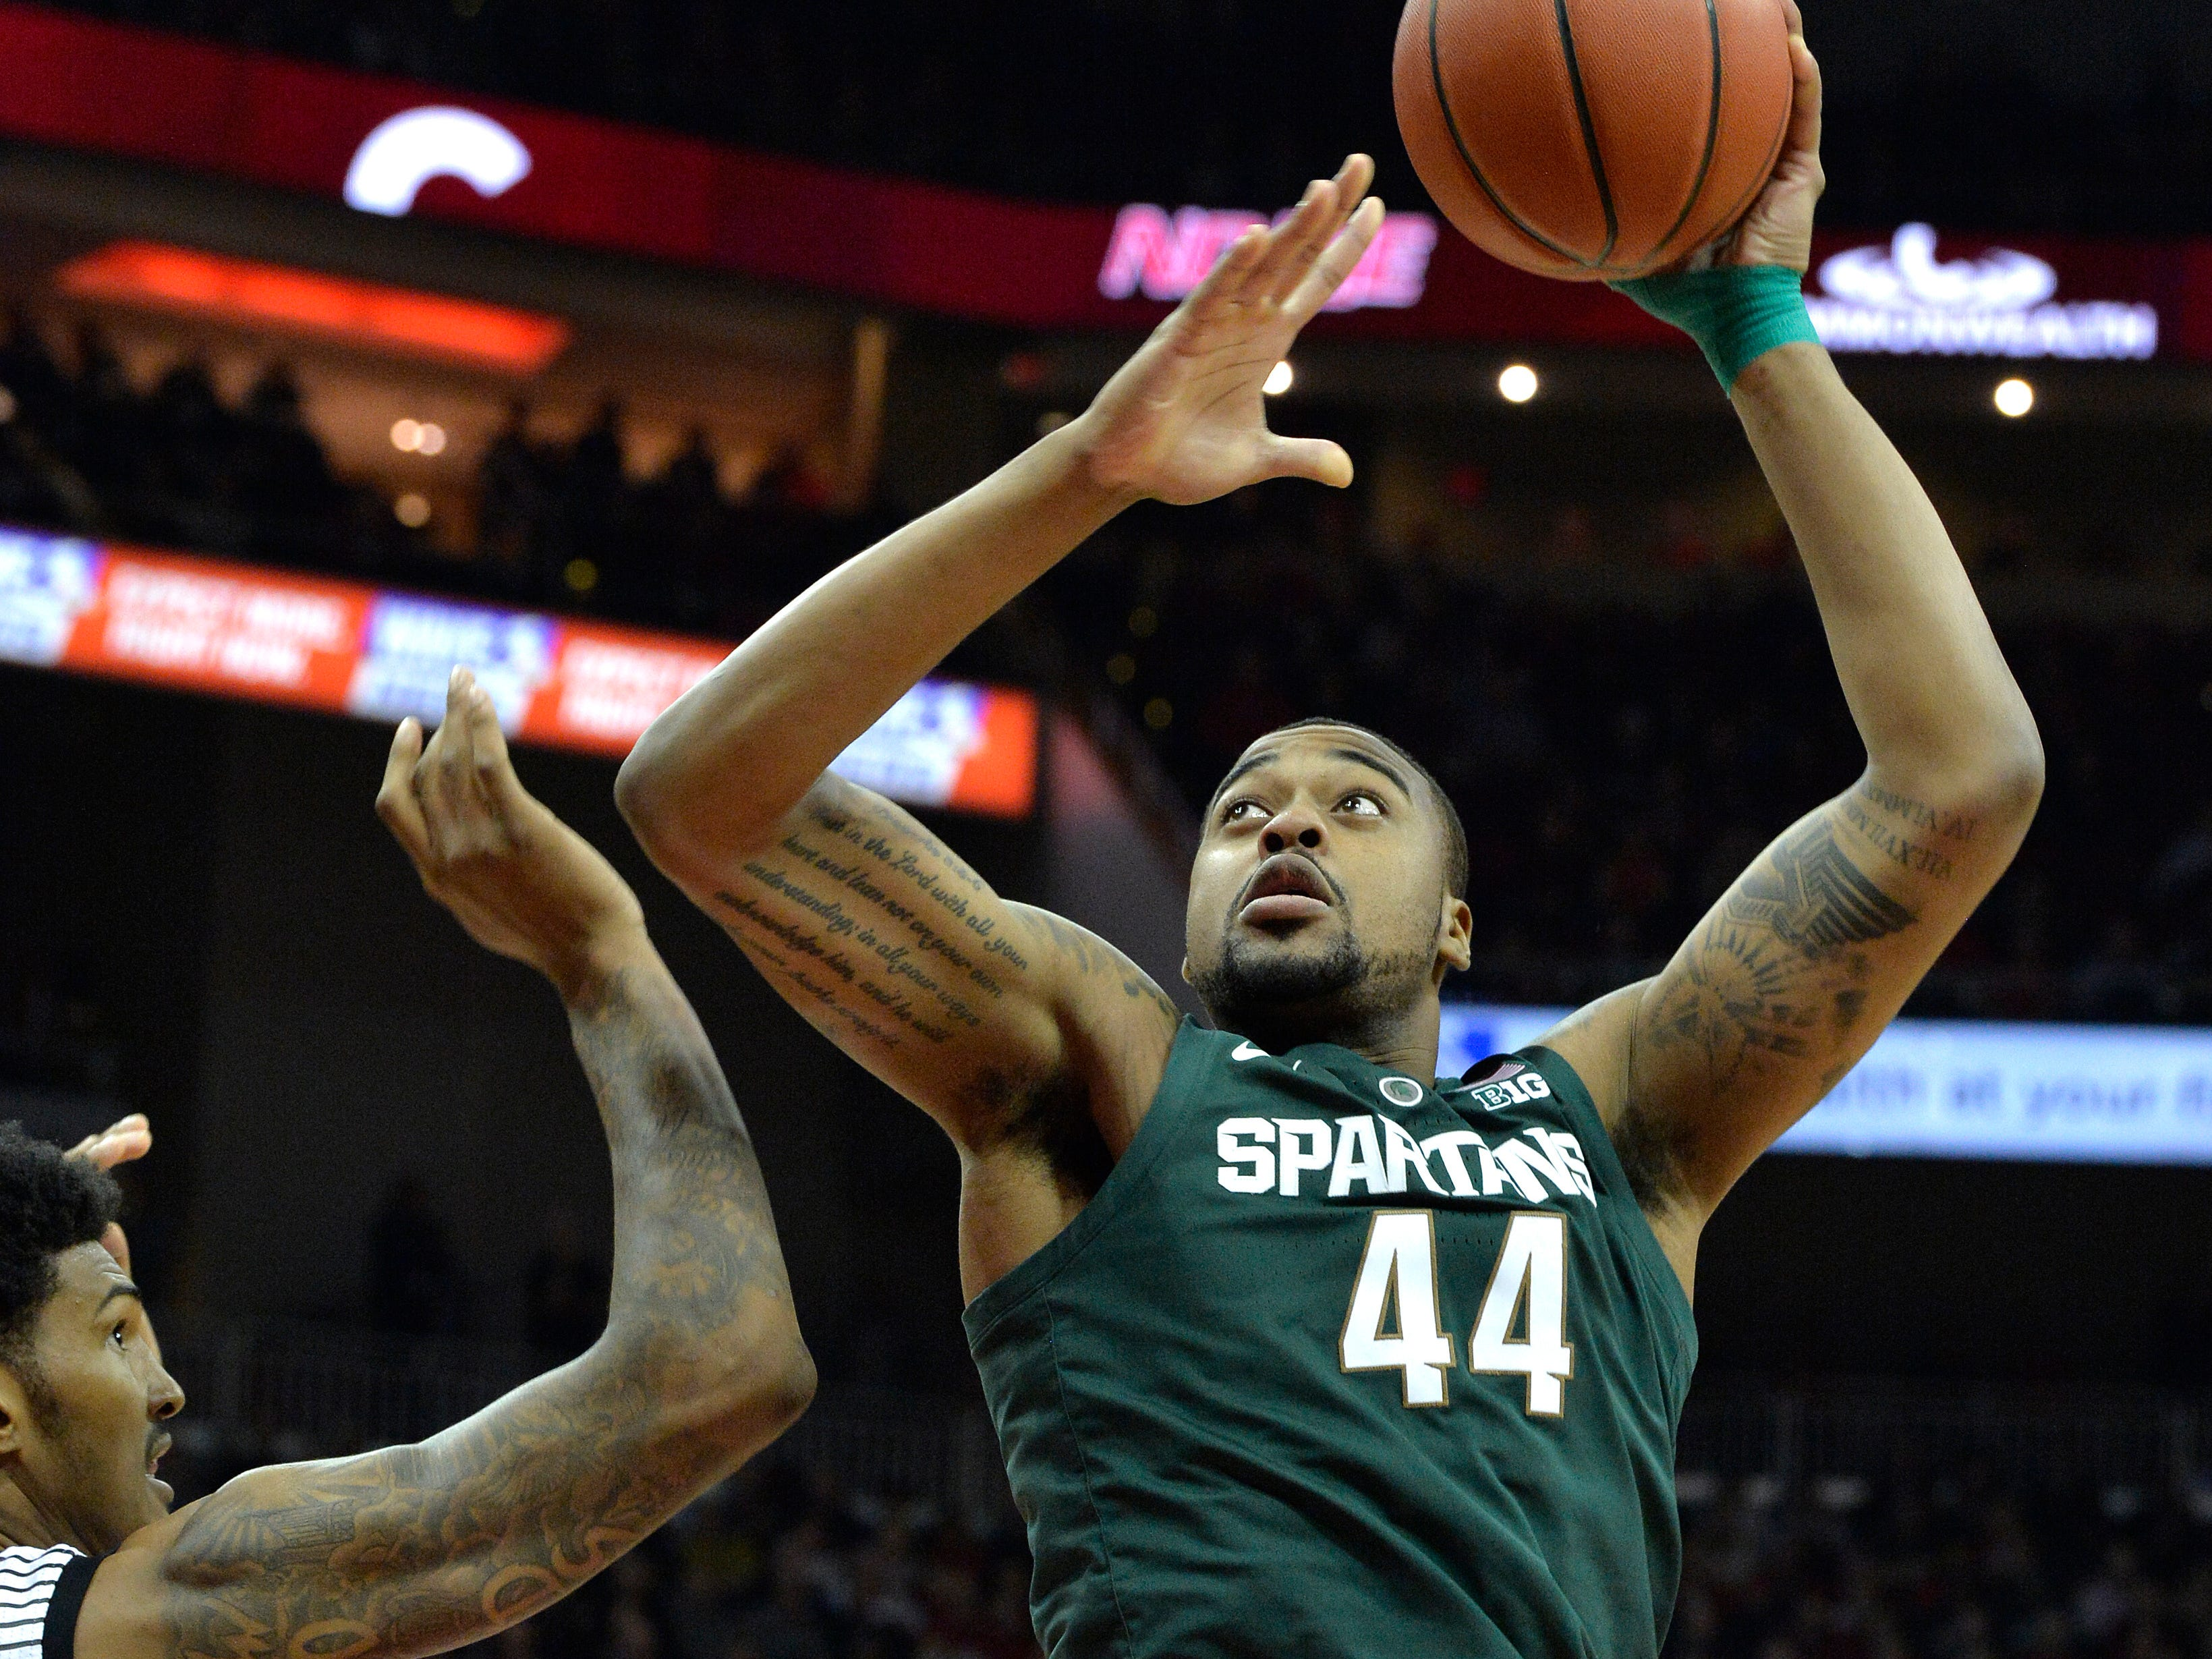 Michigan State forward Nick Ward (44) puts up a shot over Louisville center Malik Williams (5) during the first half of an NCAA college basketball game, in Louisville, Ky., Tuesday, Nov. 27, 2018.